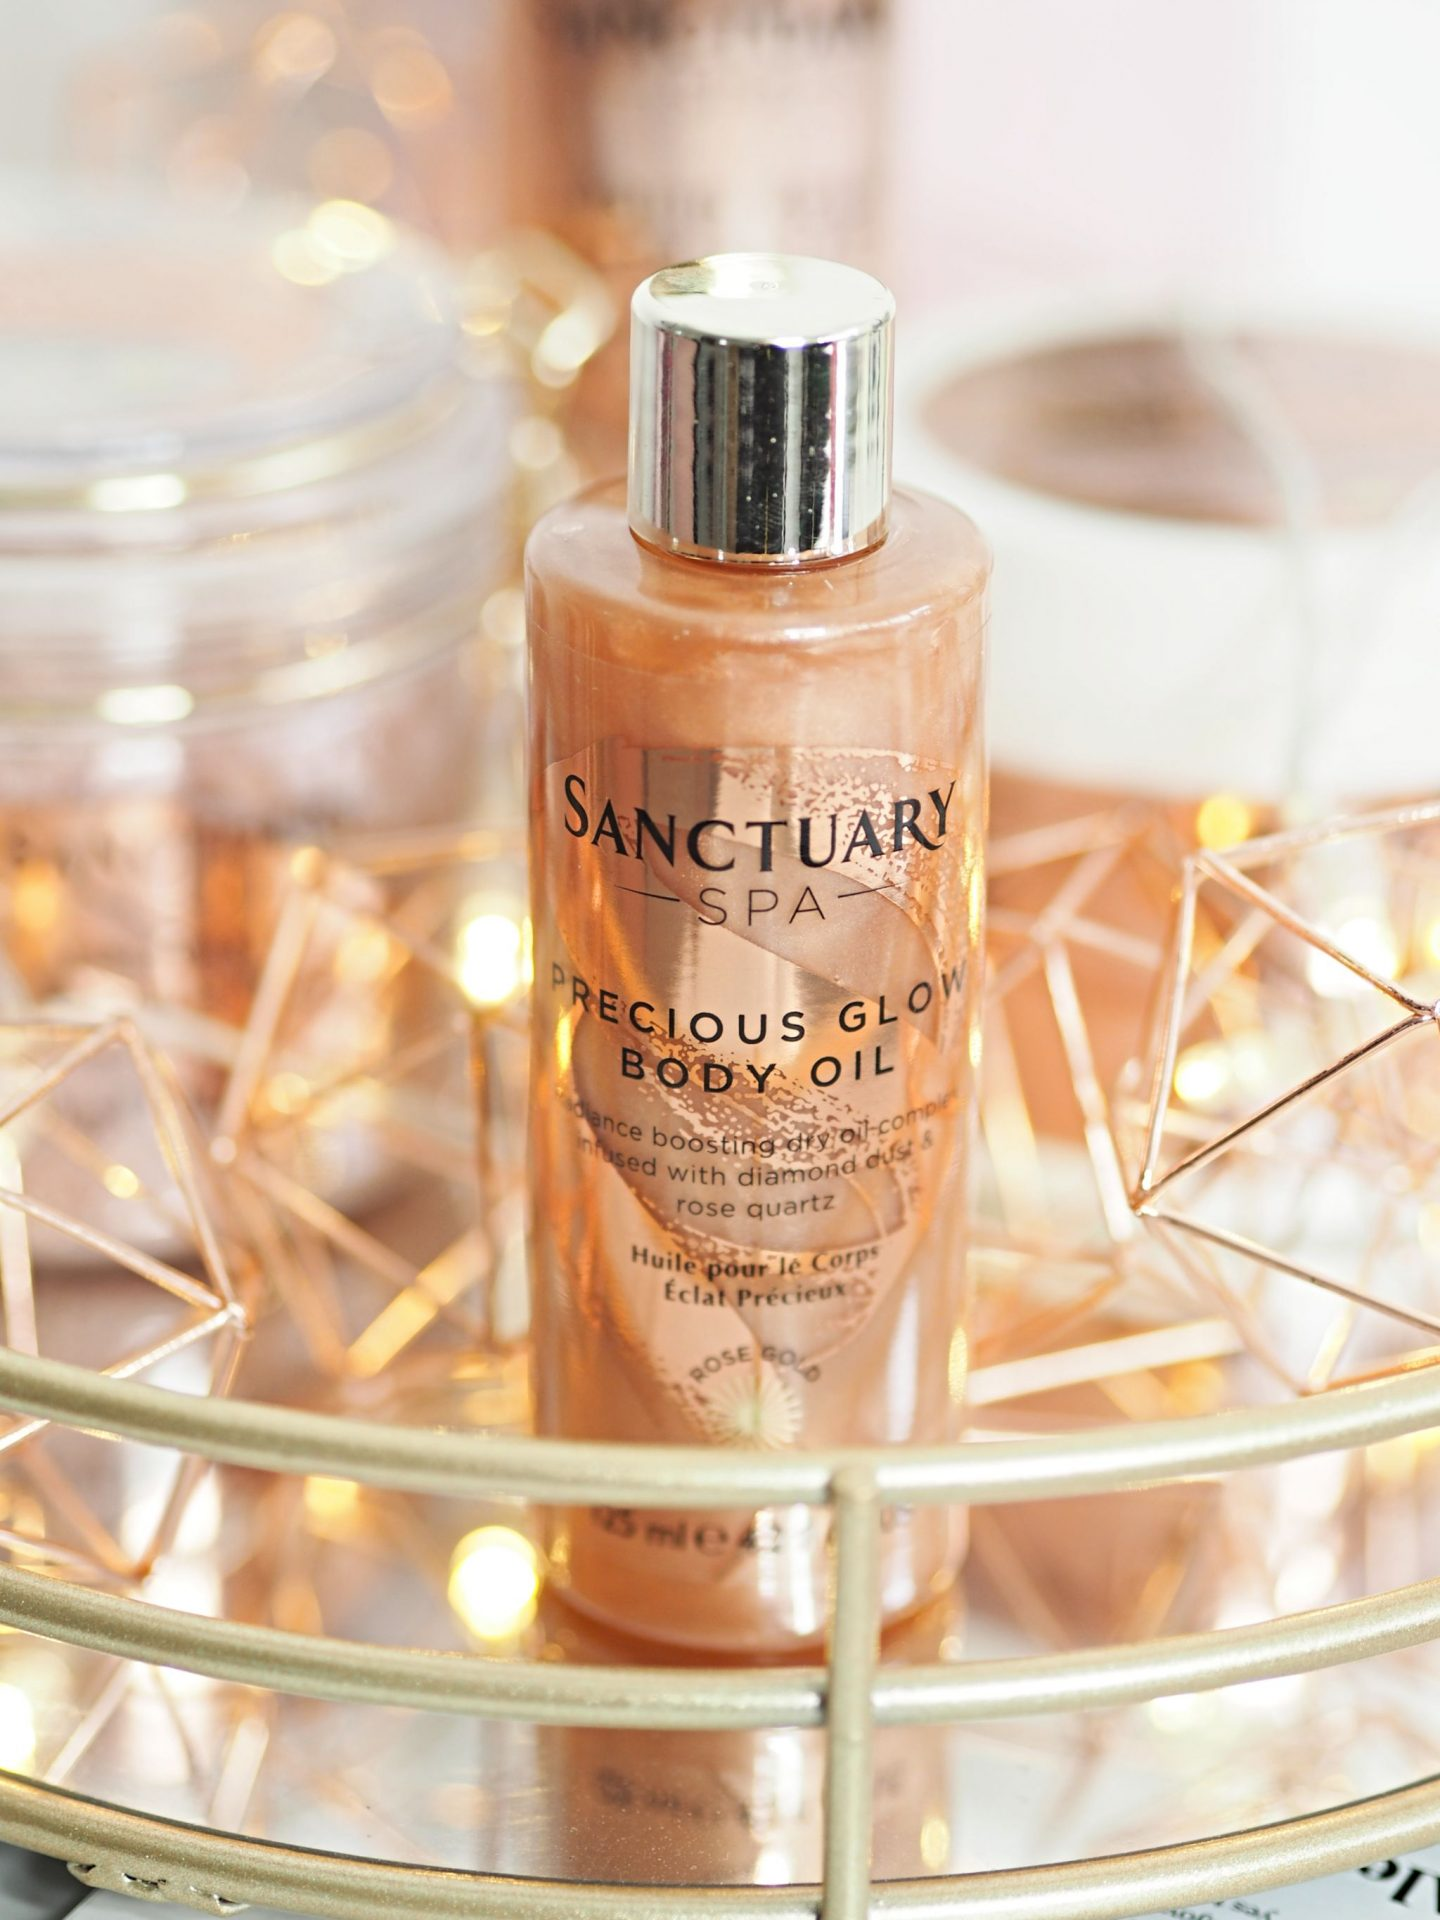 Sanctuary Spa Precious Glow Body Oil